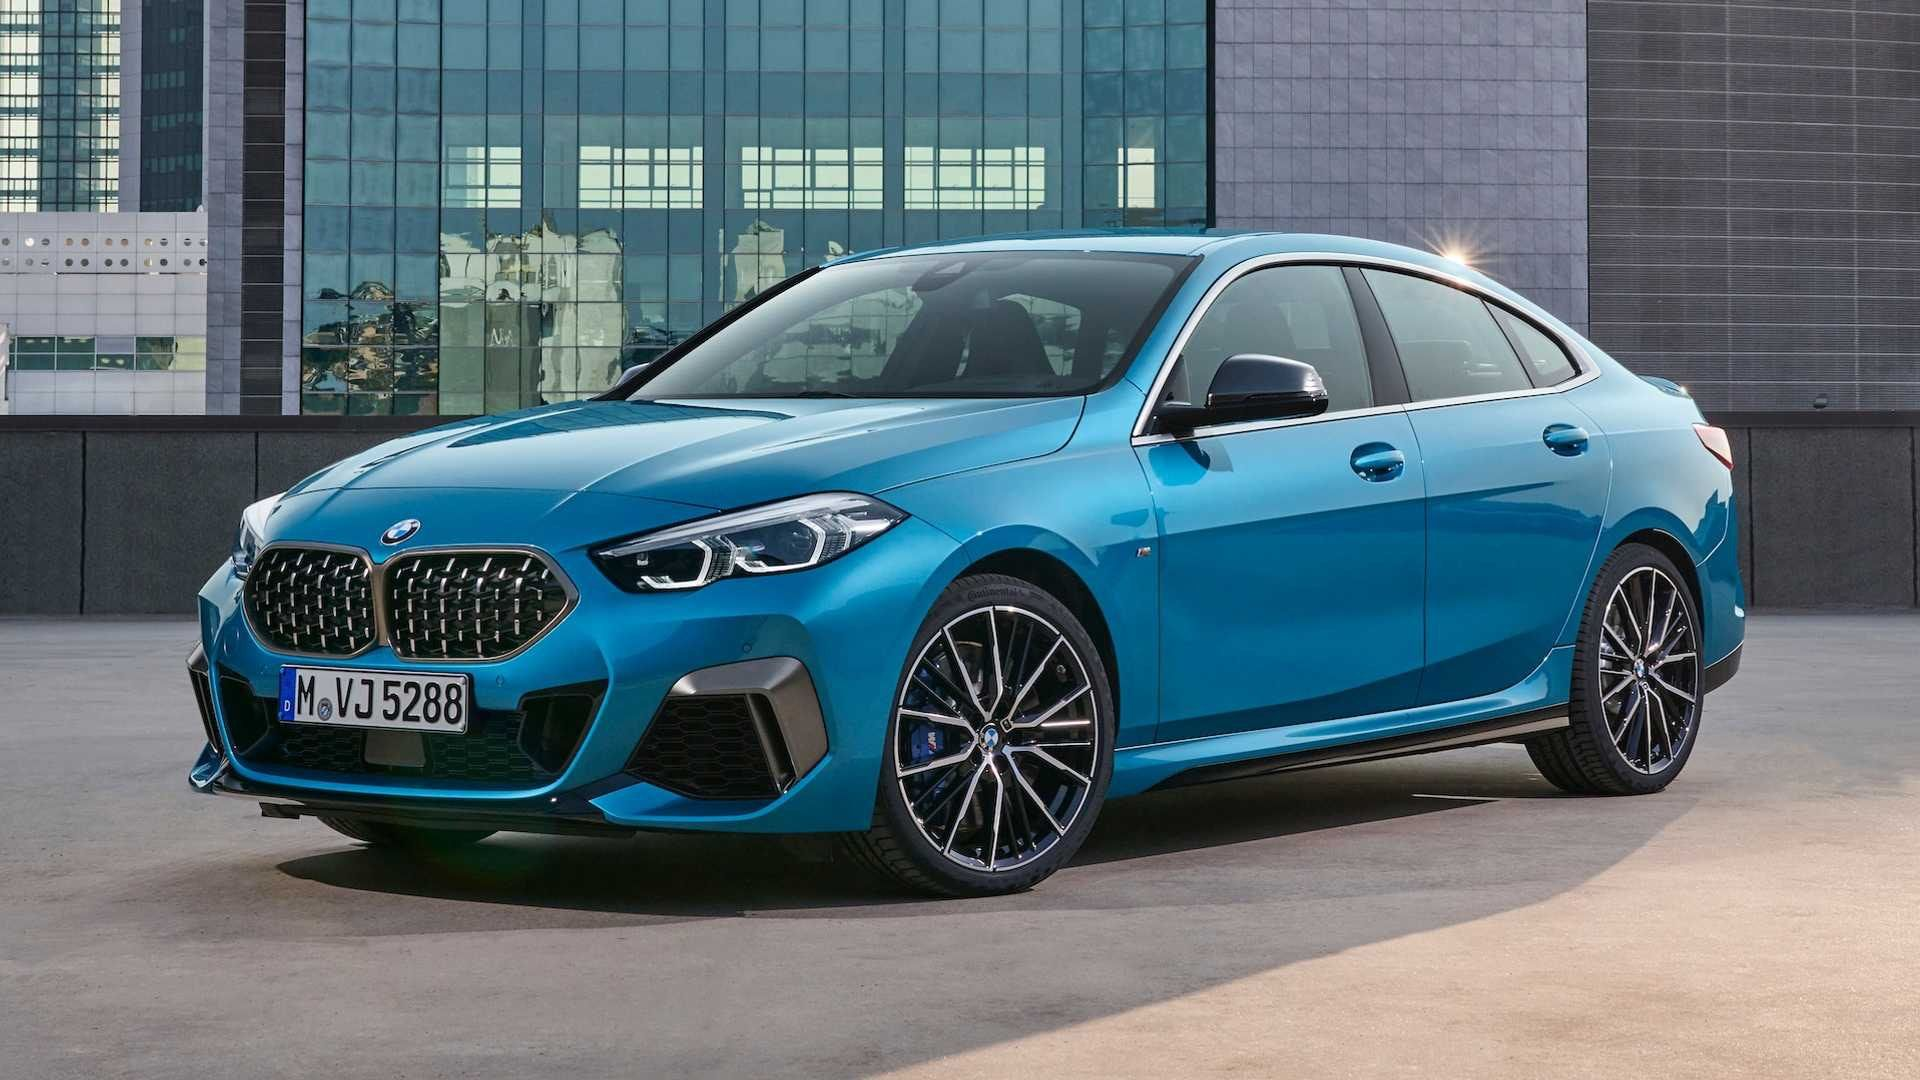 Bmw 2 Series Grand Coupe Launched In Pakistan Bmw Bmw 2 New Bmw